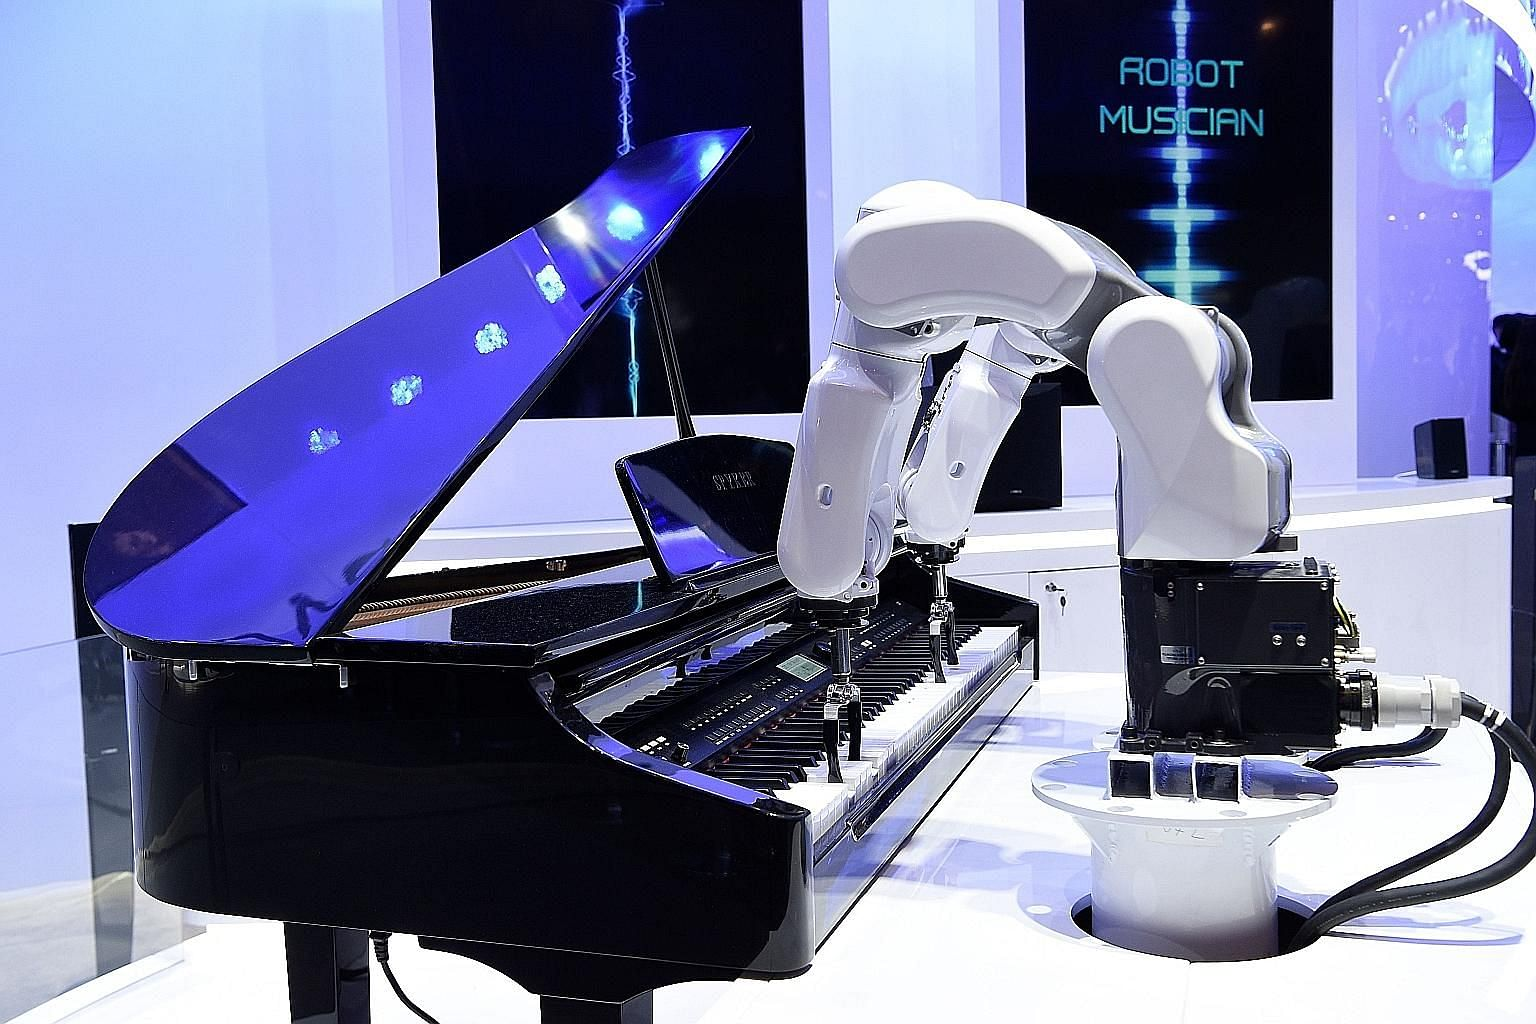 A ZTE robot musician playing the piano at the Mobile World Congress in Barcelona. Minister for Communications and Information S. Iswaran yesterday announced at the trade show that Singapore is issuing a paper on data portability to consider how it co